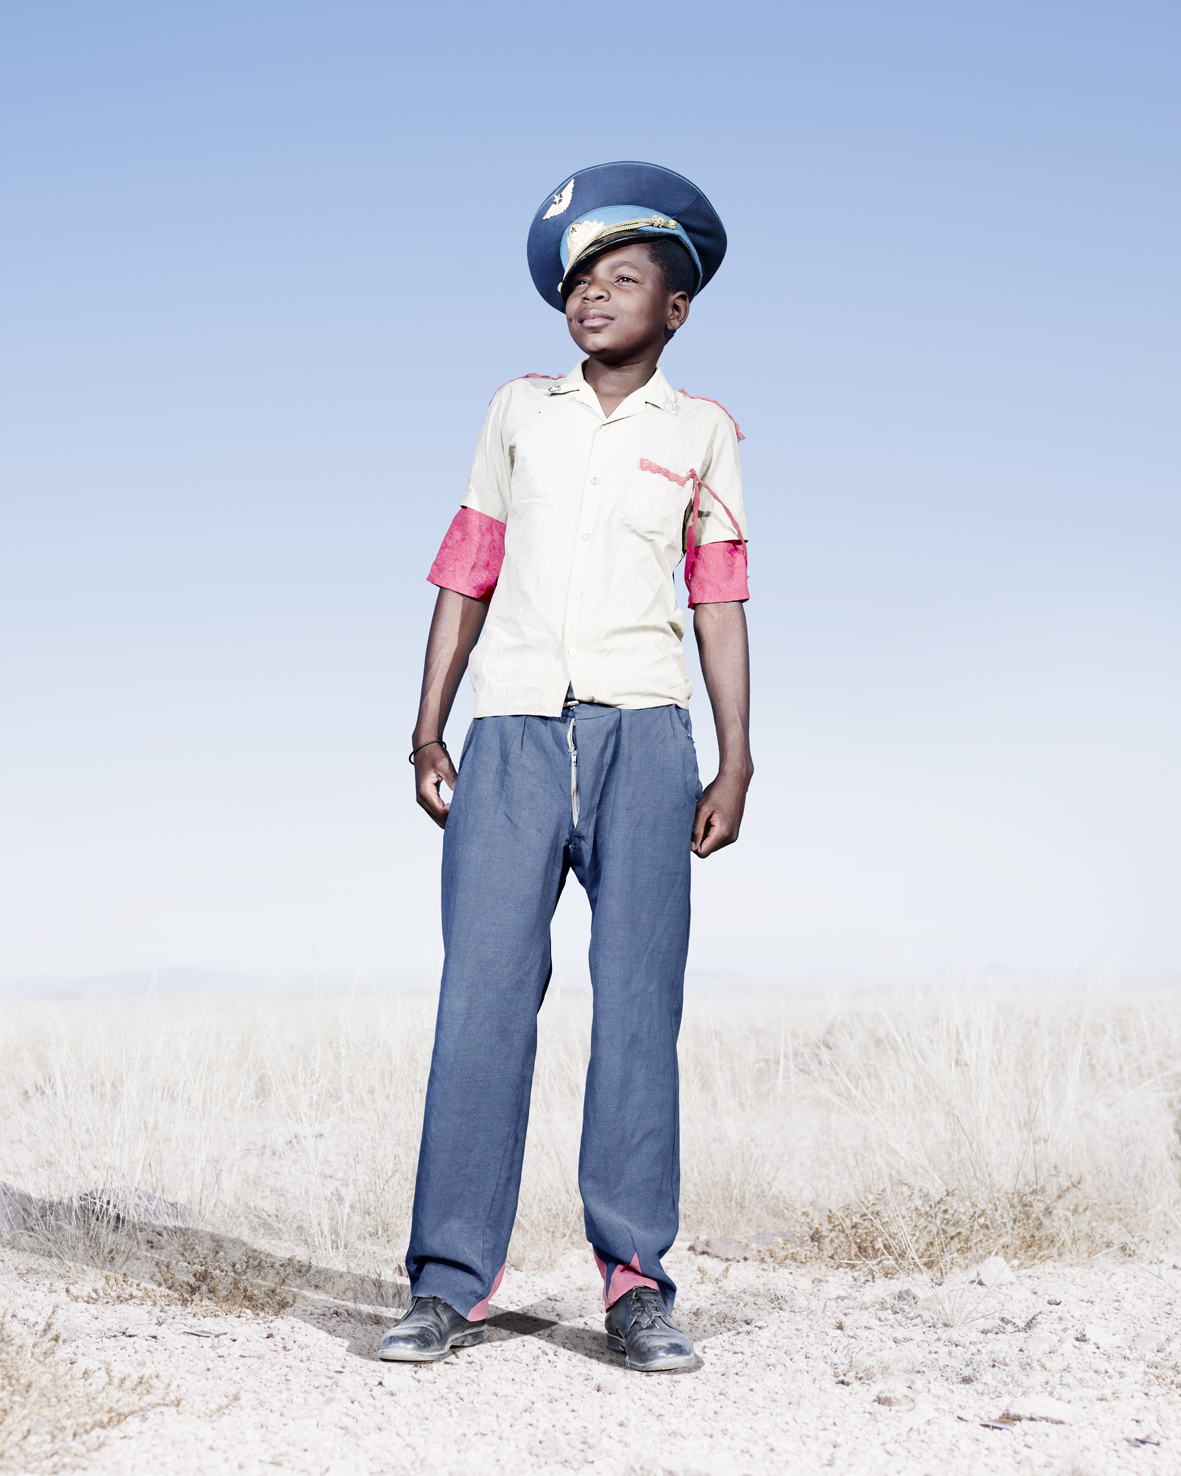 Herero cadet with blue hat.